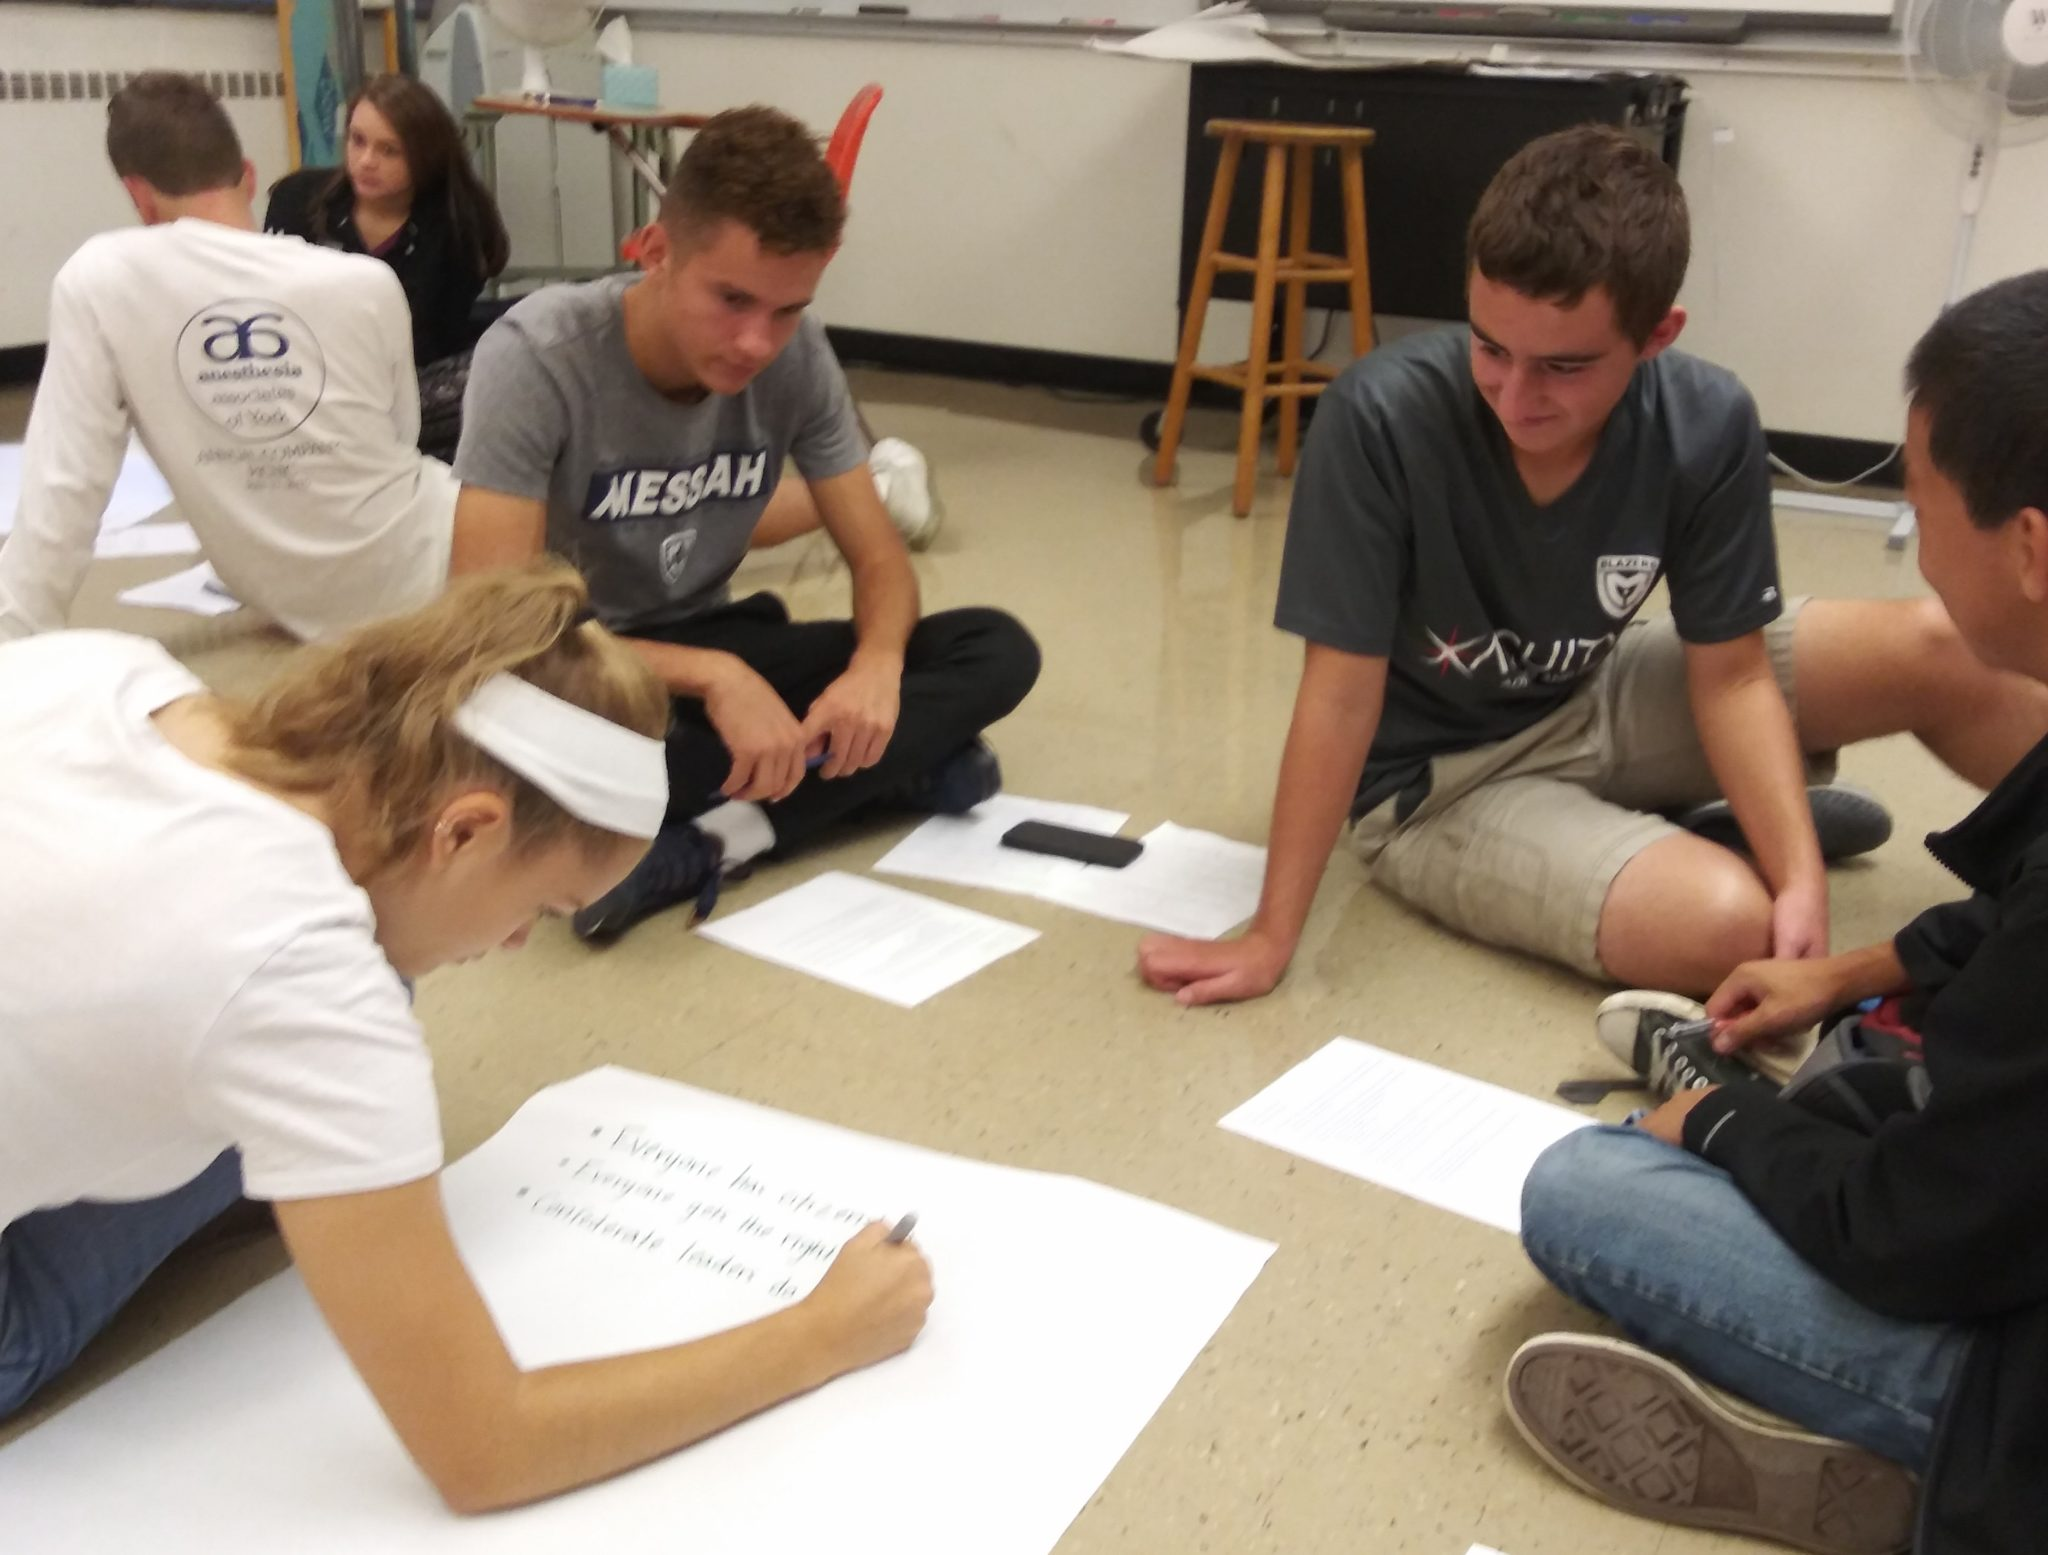 Students collaborating on a class project, drawing on paper on the floor